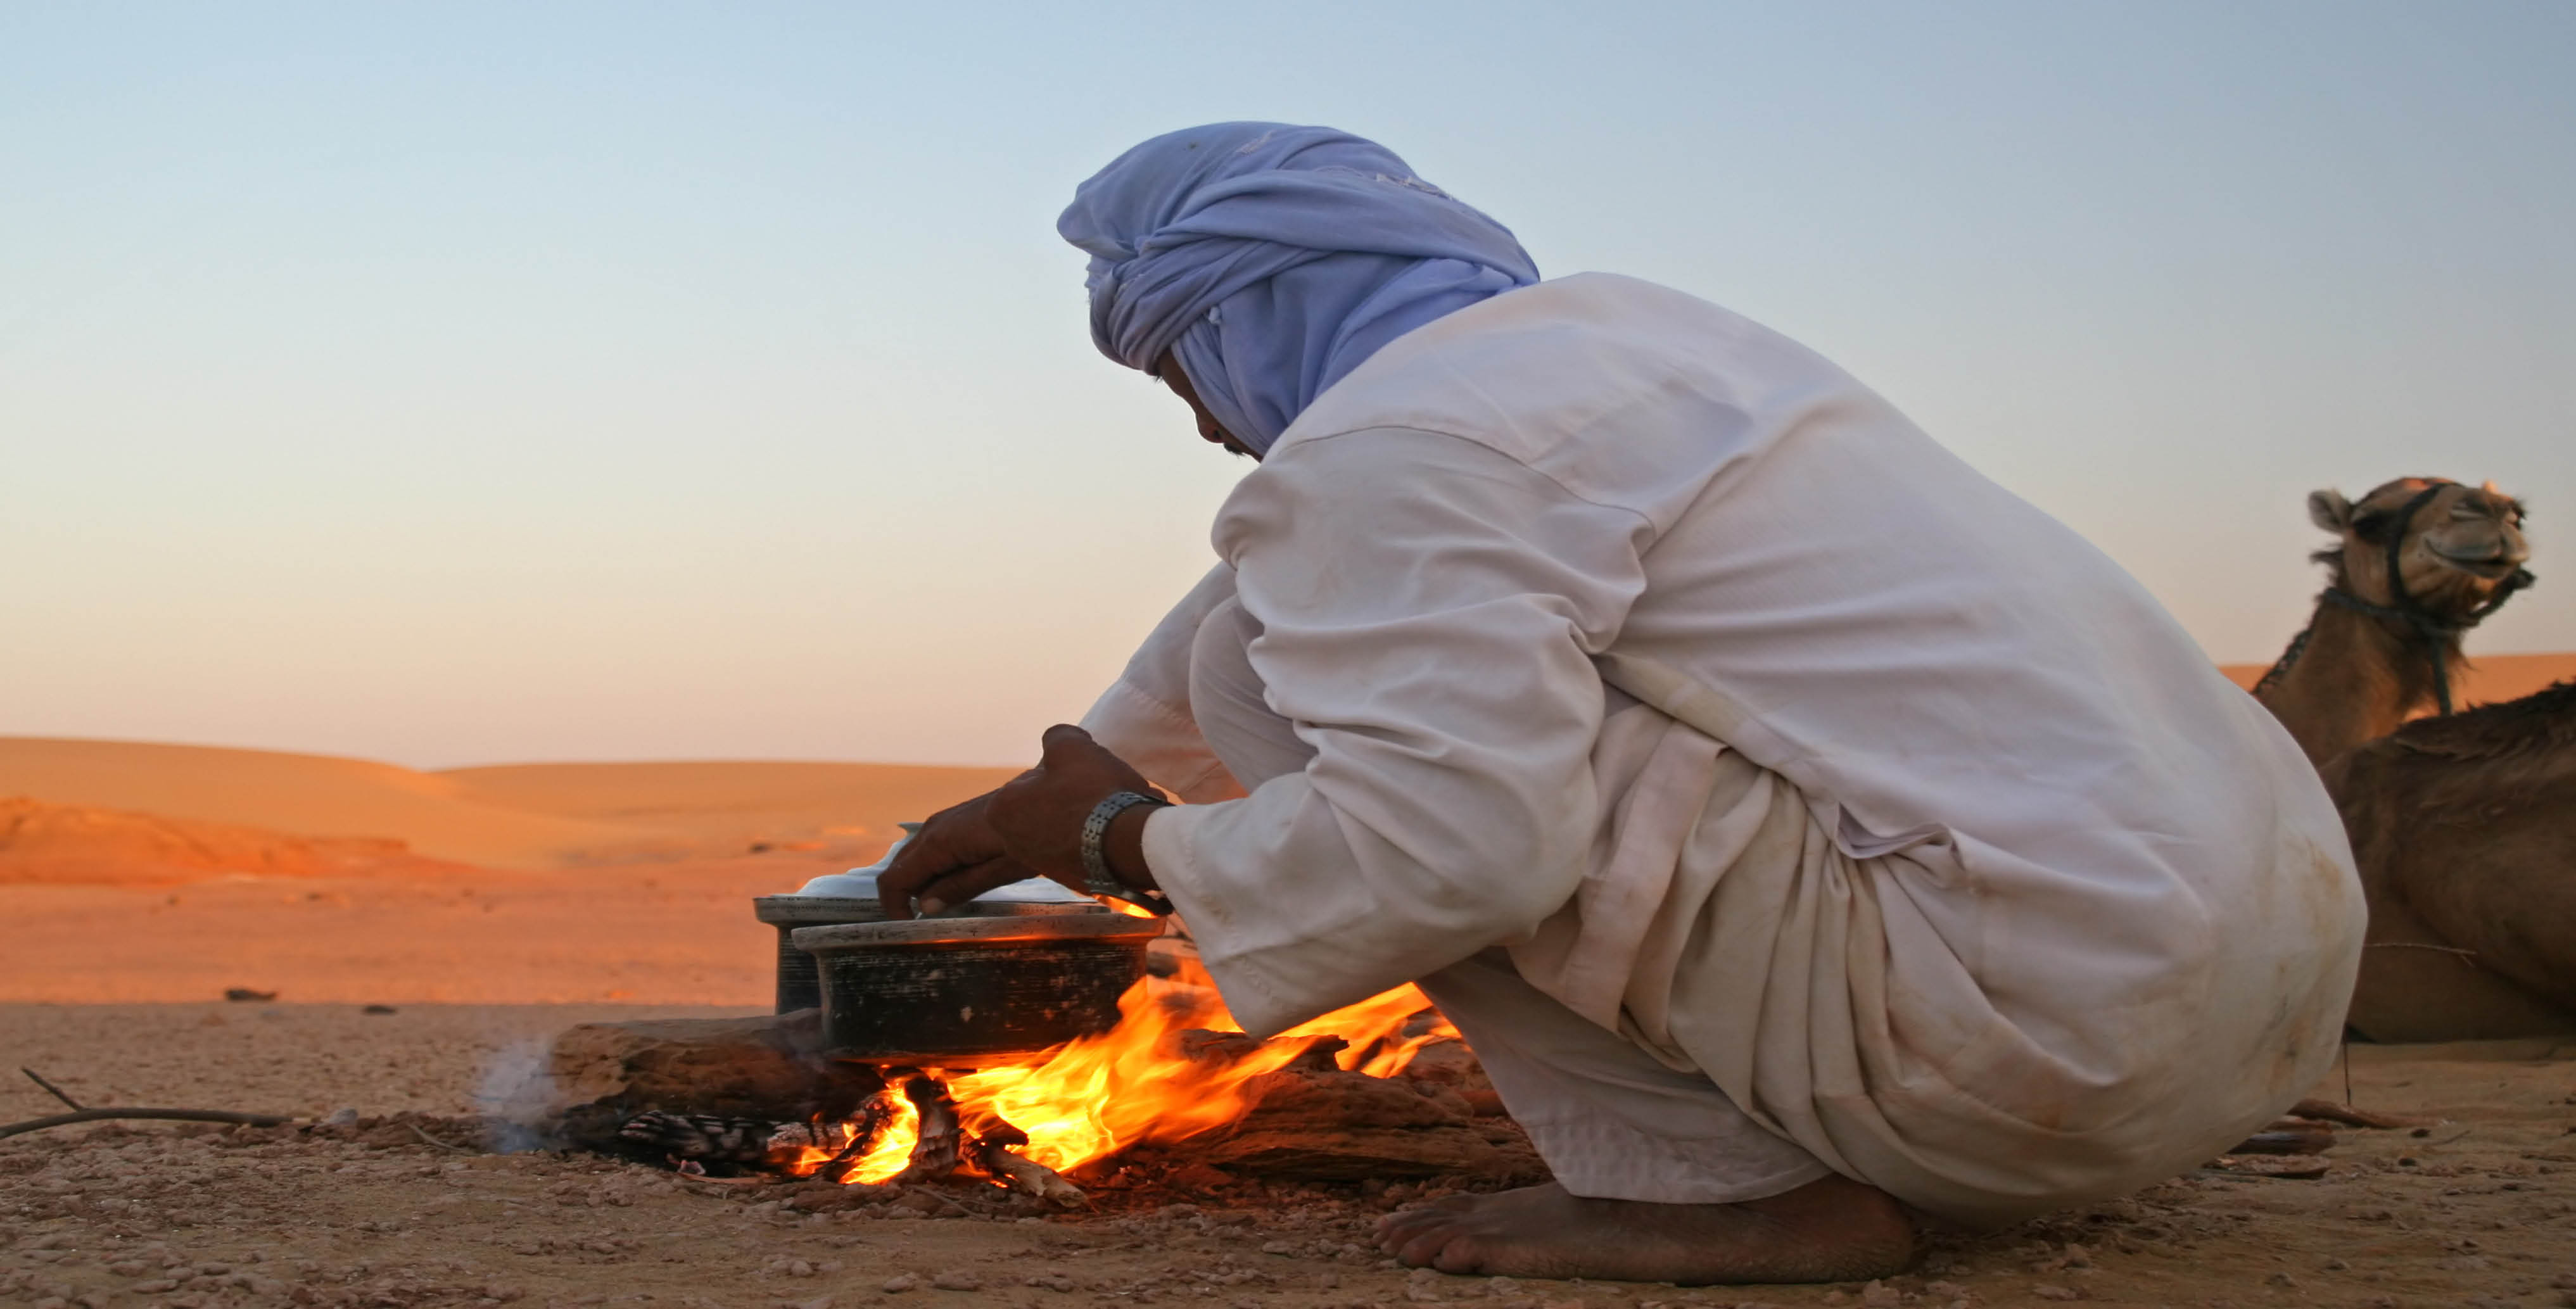 Bedouin cooking a zarb